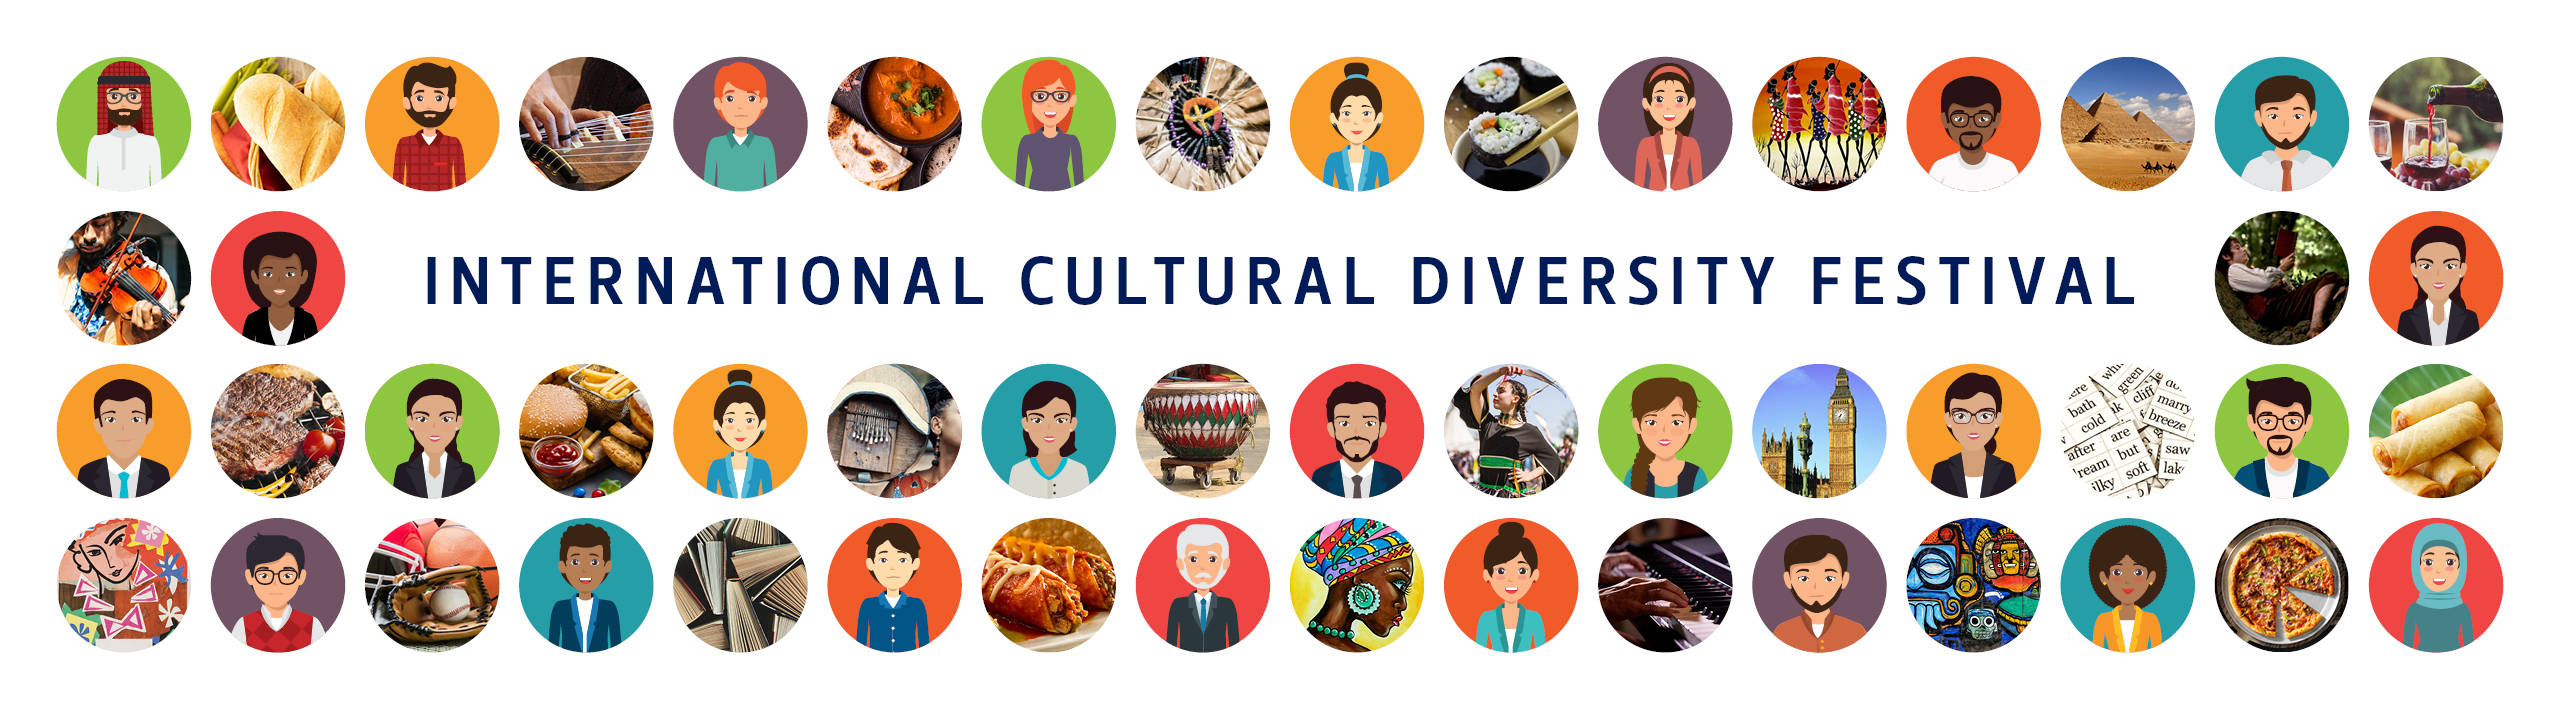 International Cultural Diversity Festival web banner Office for International Affairs